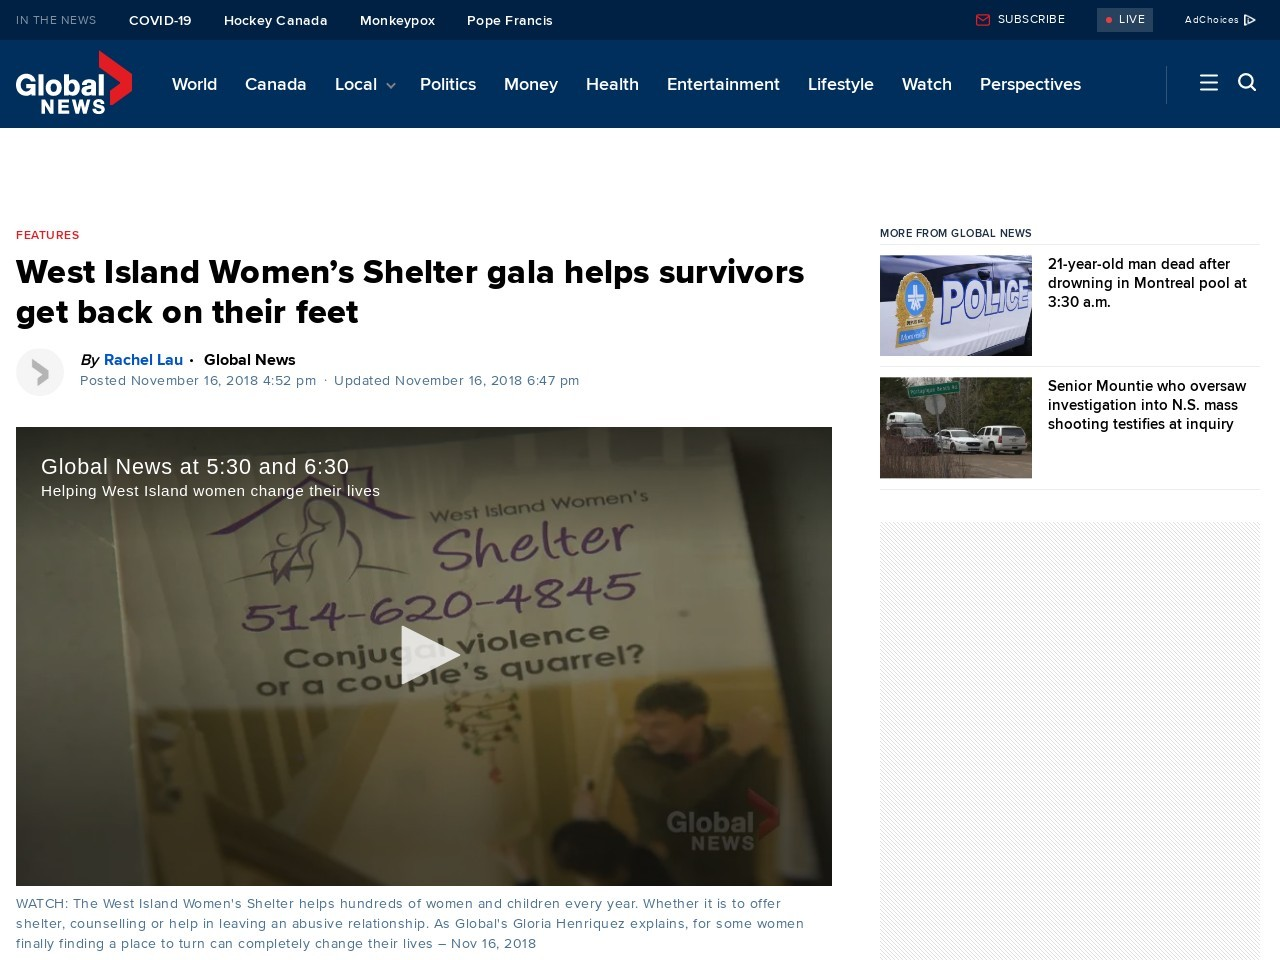 West Island Women's Shelter gala helps survivors get back on their feet